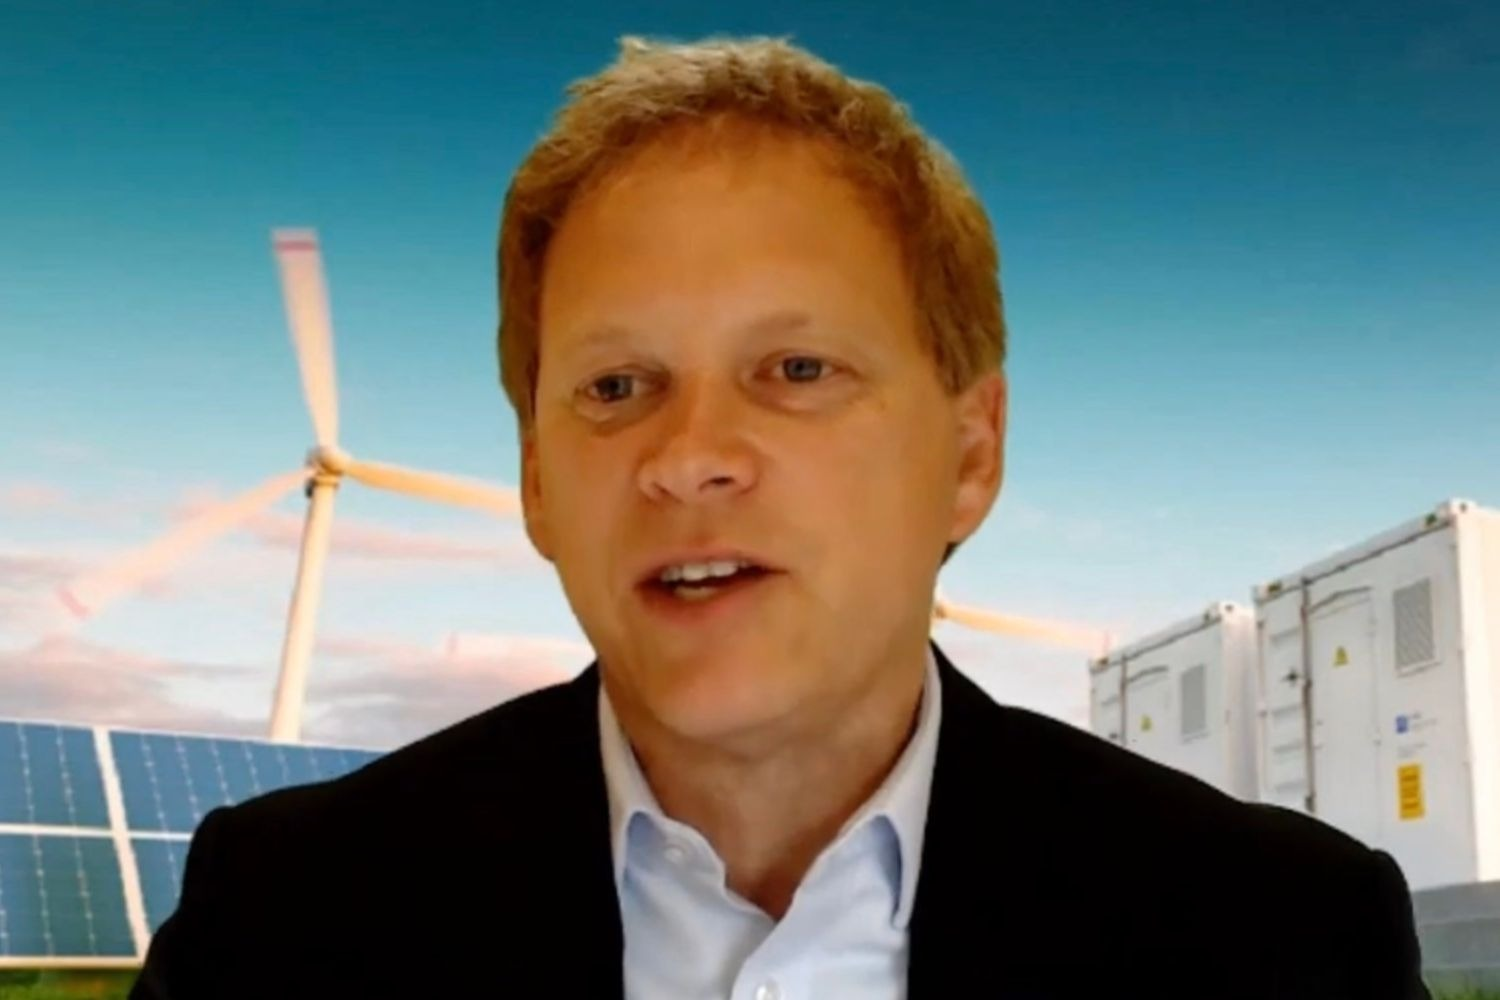 Grant Shapps LowCVP Conference